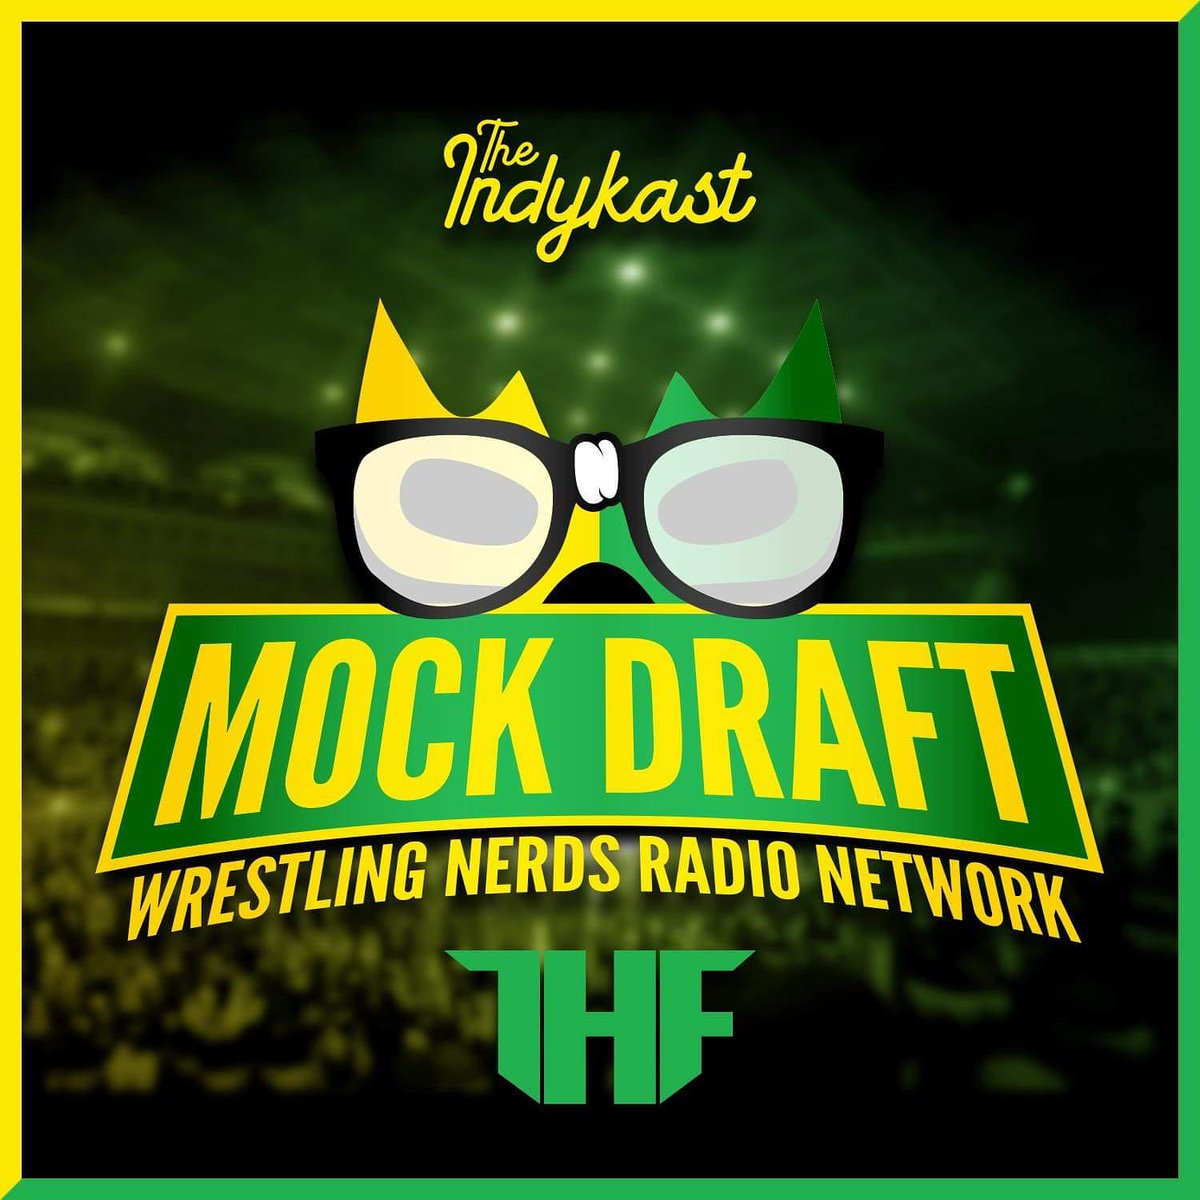 Then prepare yourselves for a Special #MEGAPOD with the entire family here at @TheWNRN as we have our first annual #MockDraft!  We will announce our brands all this week, then you can decide which brand drafted the best!  https://t.co/BzE7VVdjNB  Also on #iTunes and #Spotify https://t.co/mjHy9z8hv1